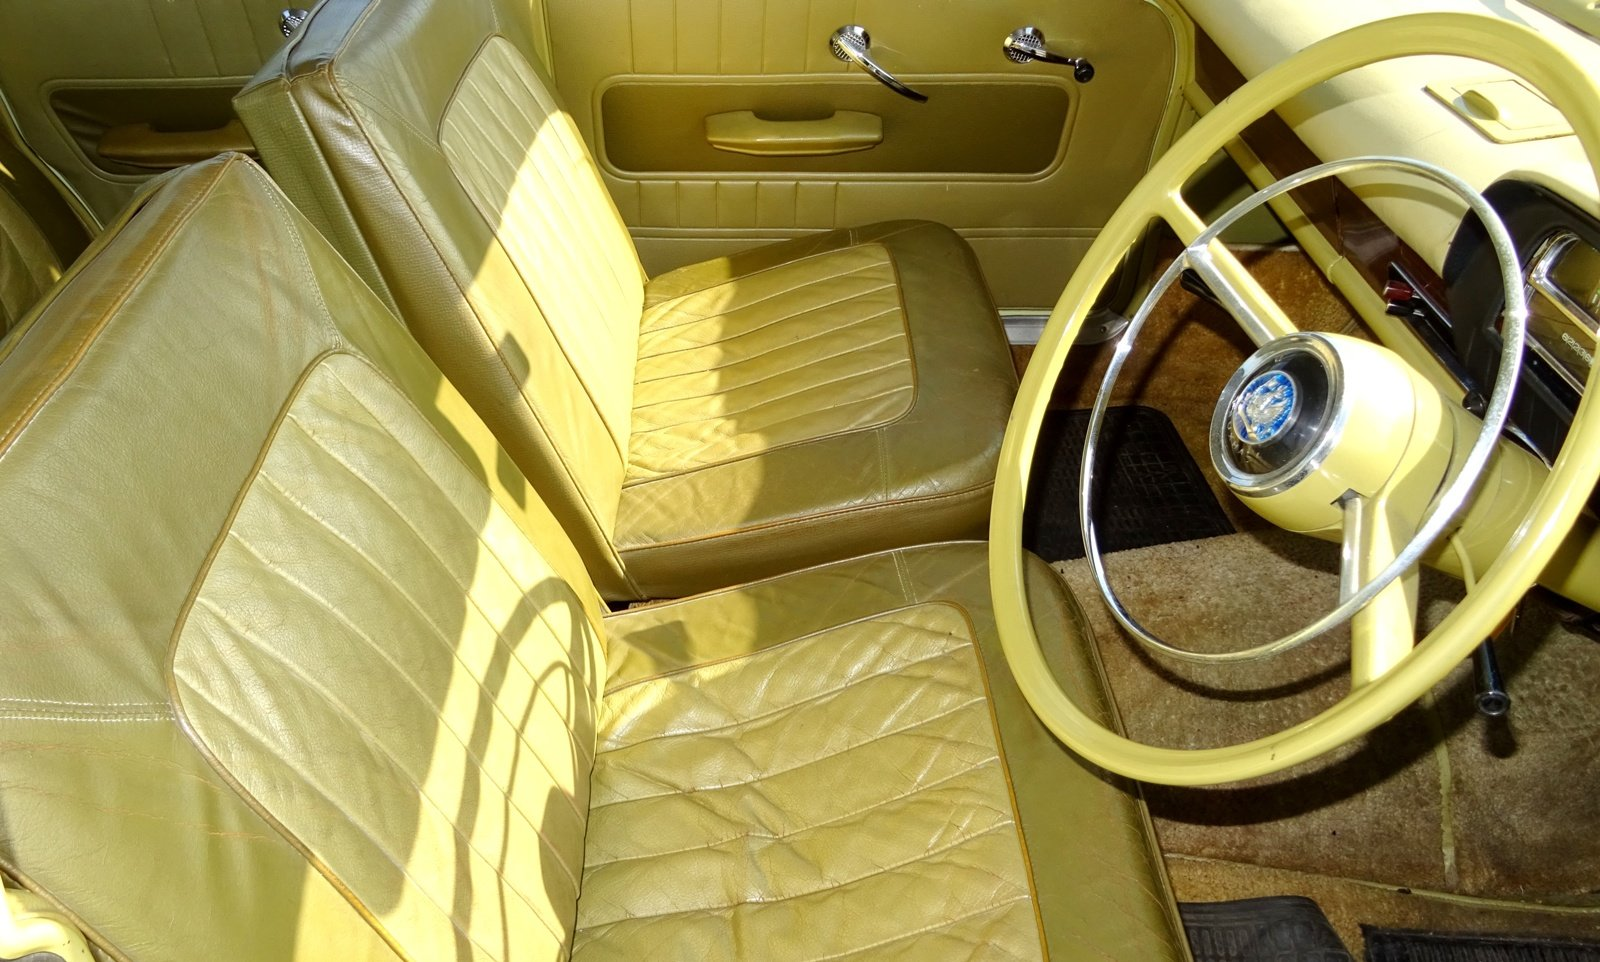 1961 VAUXHALL CRESTA STYLISH CLASSIC RARE COLOUR SCHEME AND SEATS For Sale (picture 6 of 6)